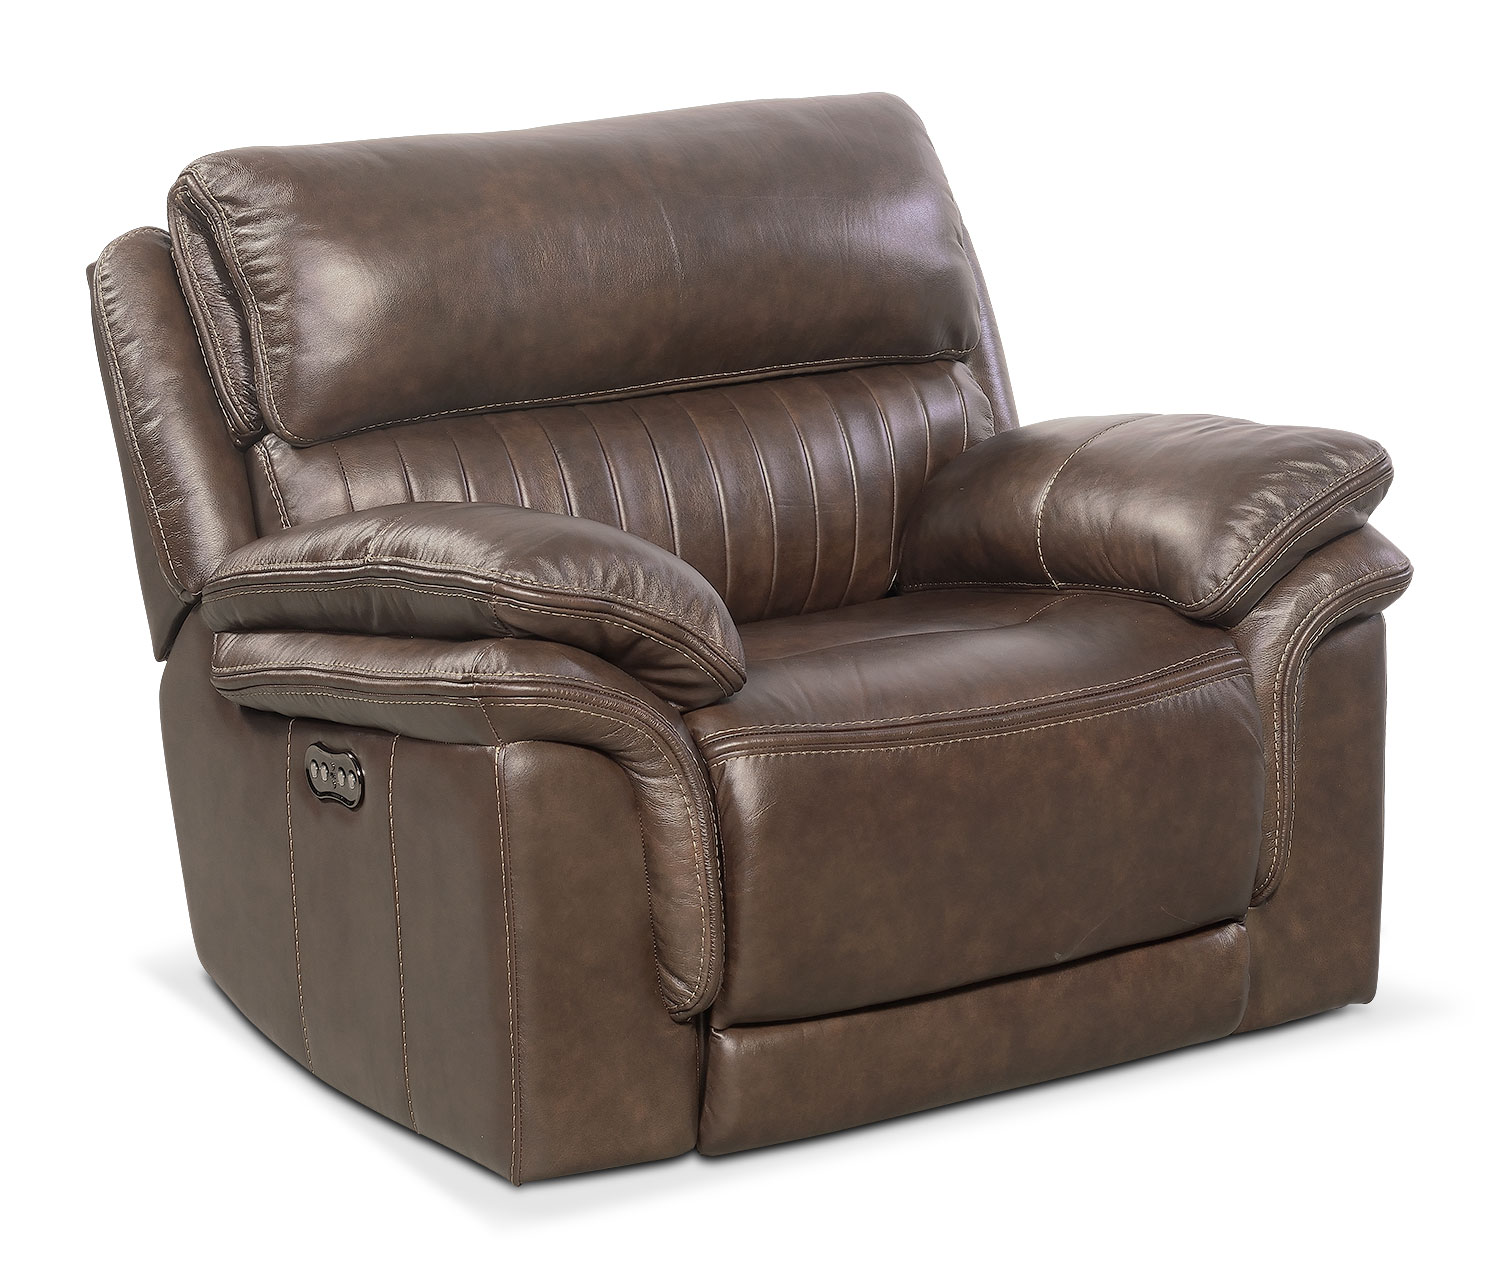 Hover to zoom  sc 1 st  Value City Furniture & Monterey Power Recliner - Brown | Value City Furniture islam-shia.org